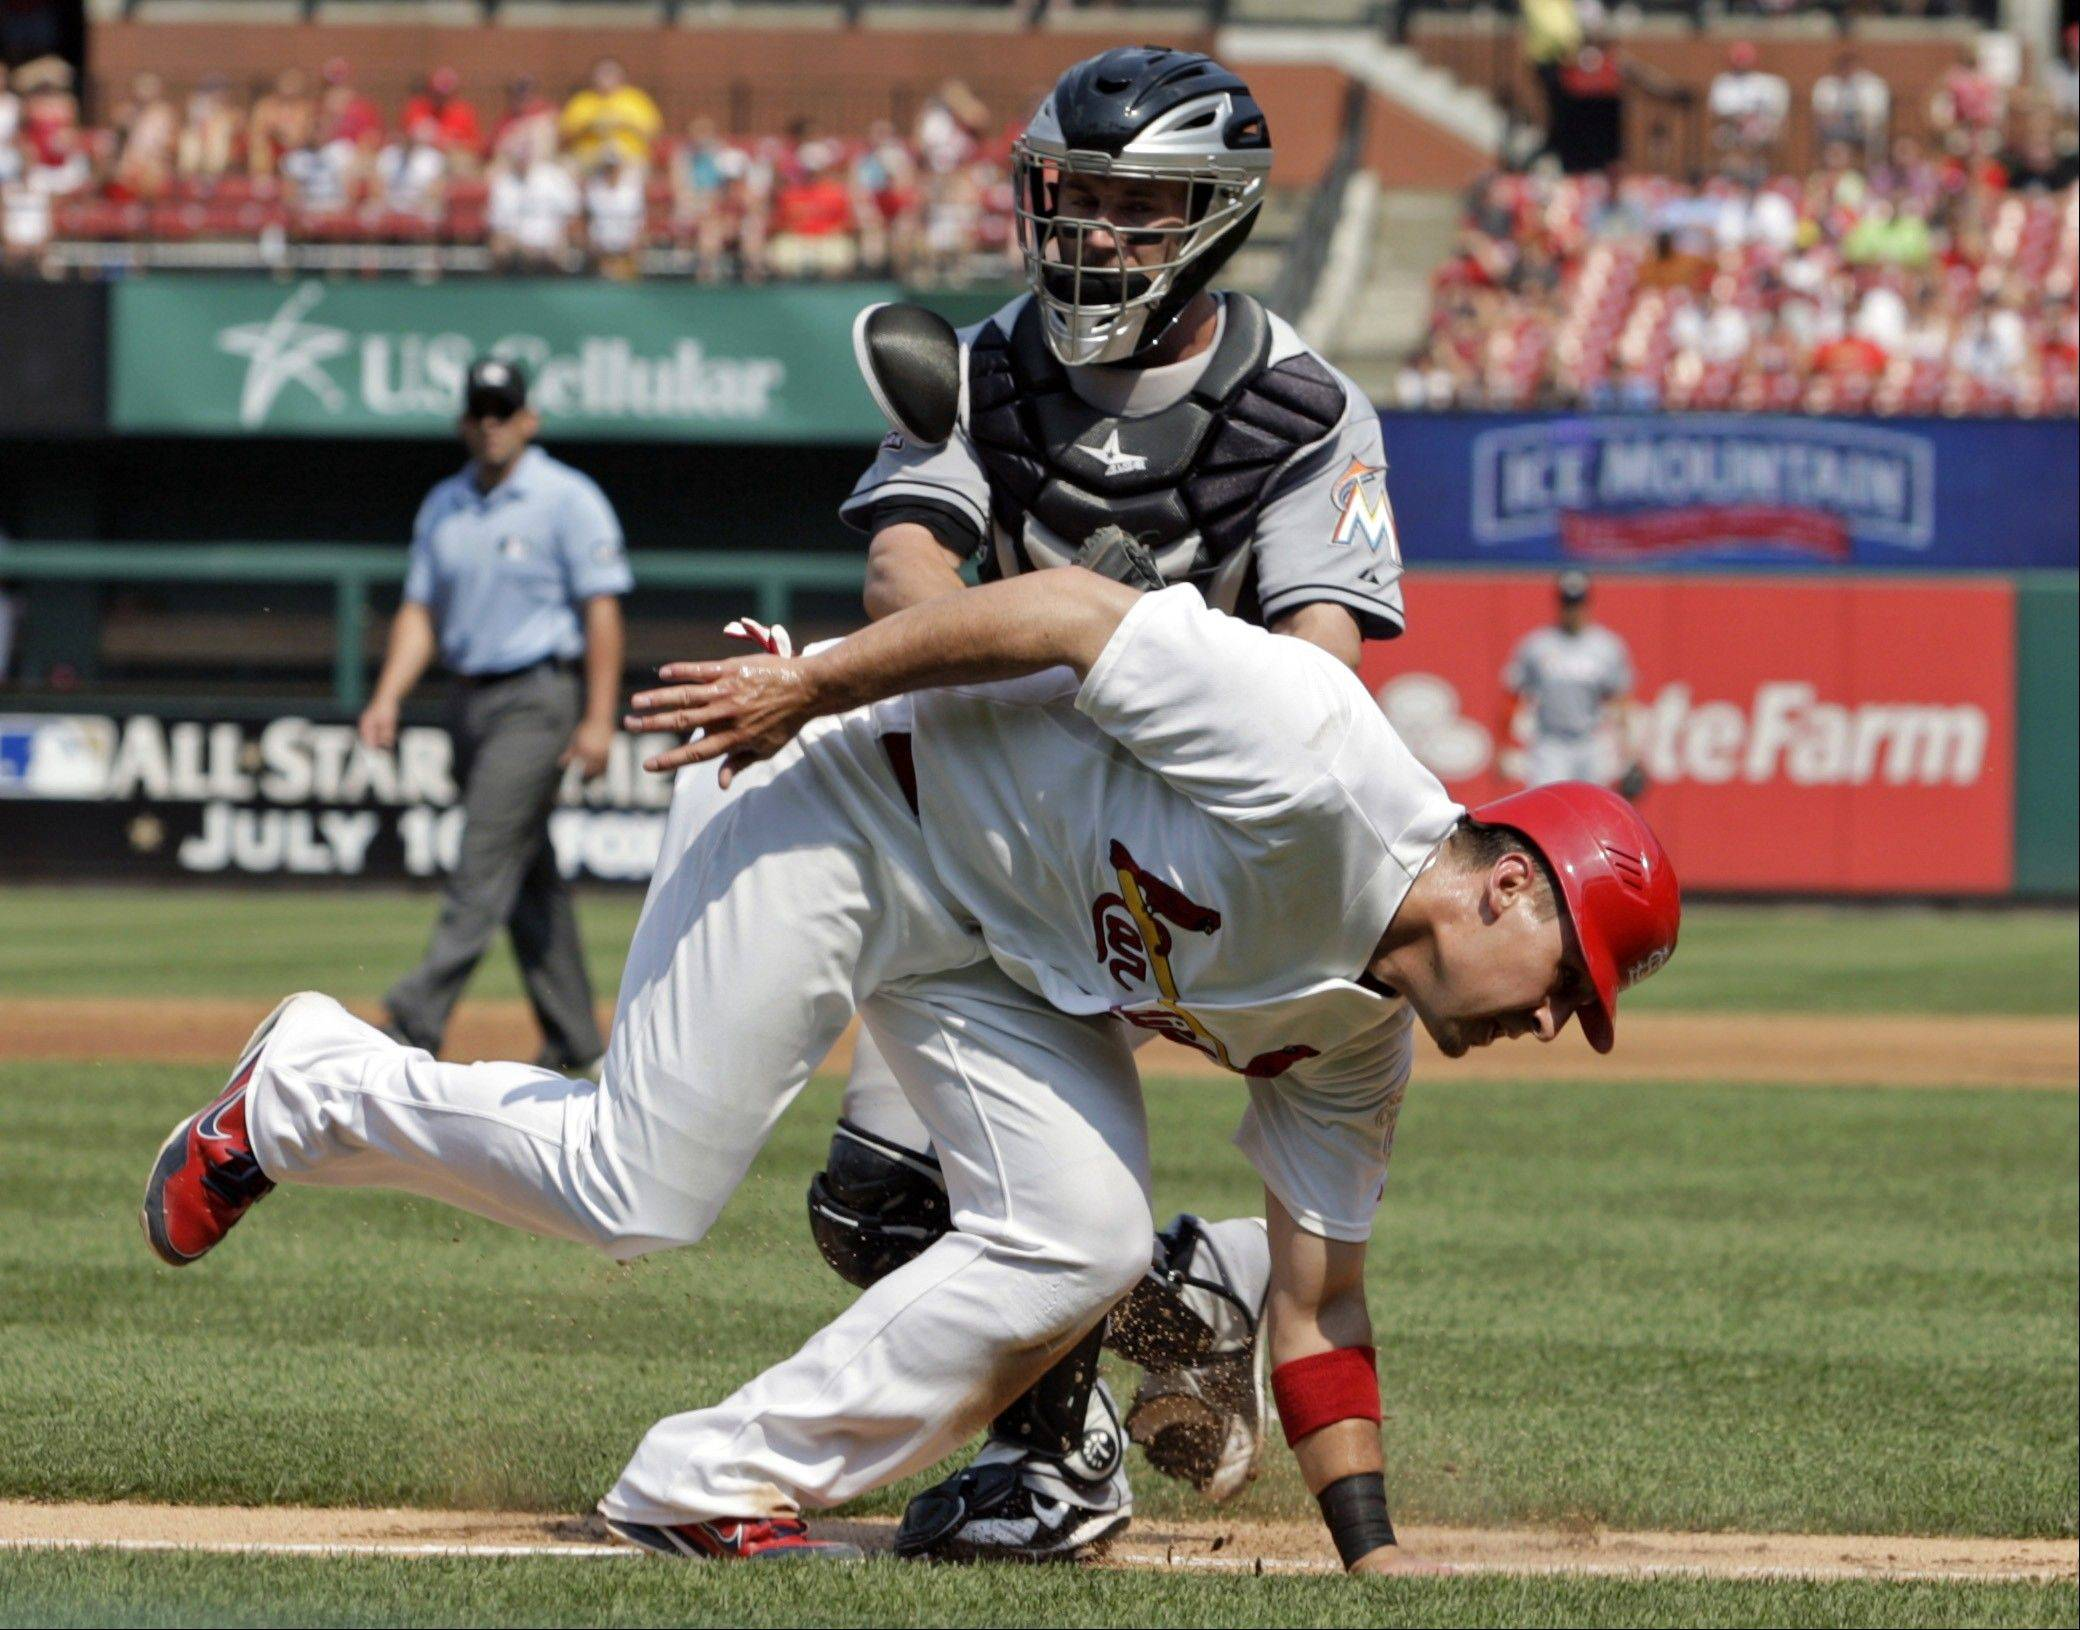 The St. Louis Cardinals� Allen Craig is tagged out by Miami Marlins catcher Brett Hayes Saturday after being caught in a rundown between third and home during the second inning in St. Louis.